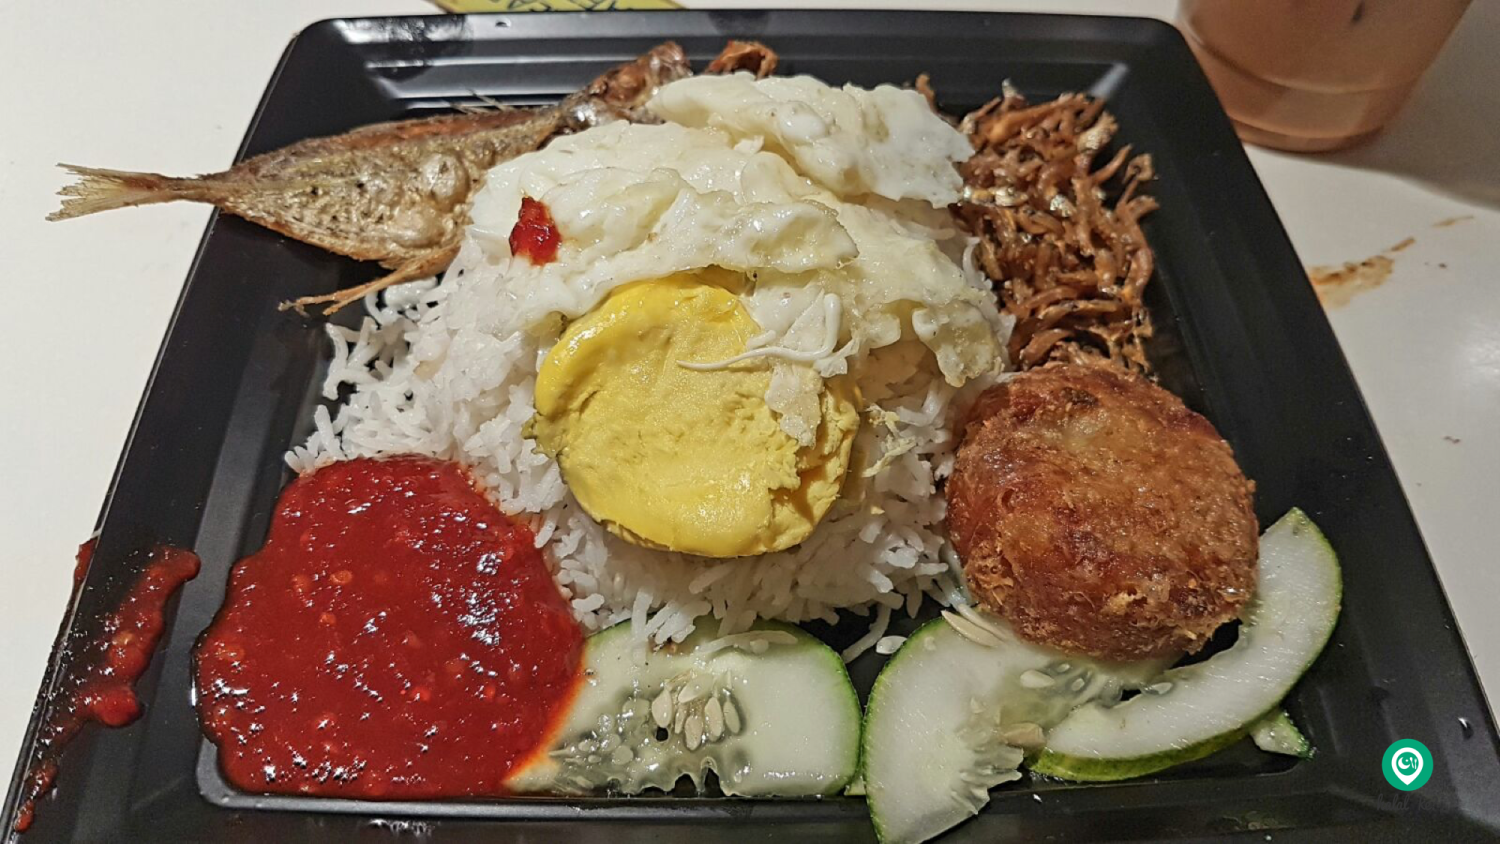 Boleh Boleh Nasi Lemak at Jurong West, Singapore